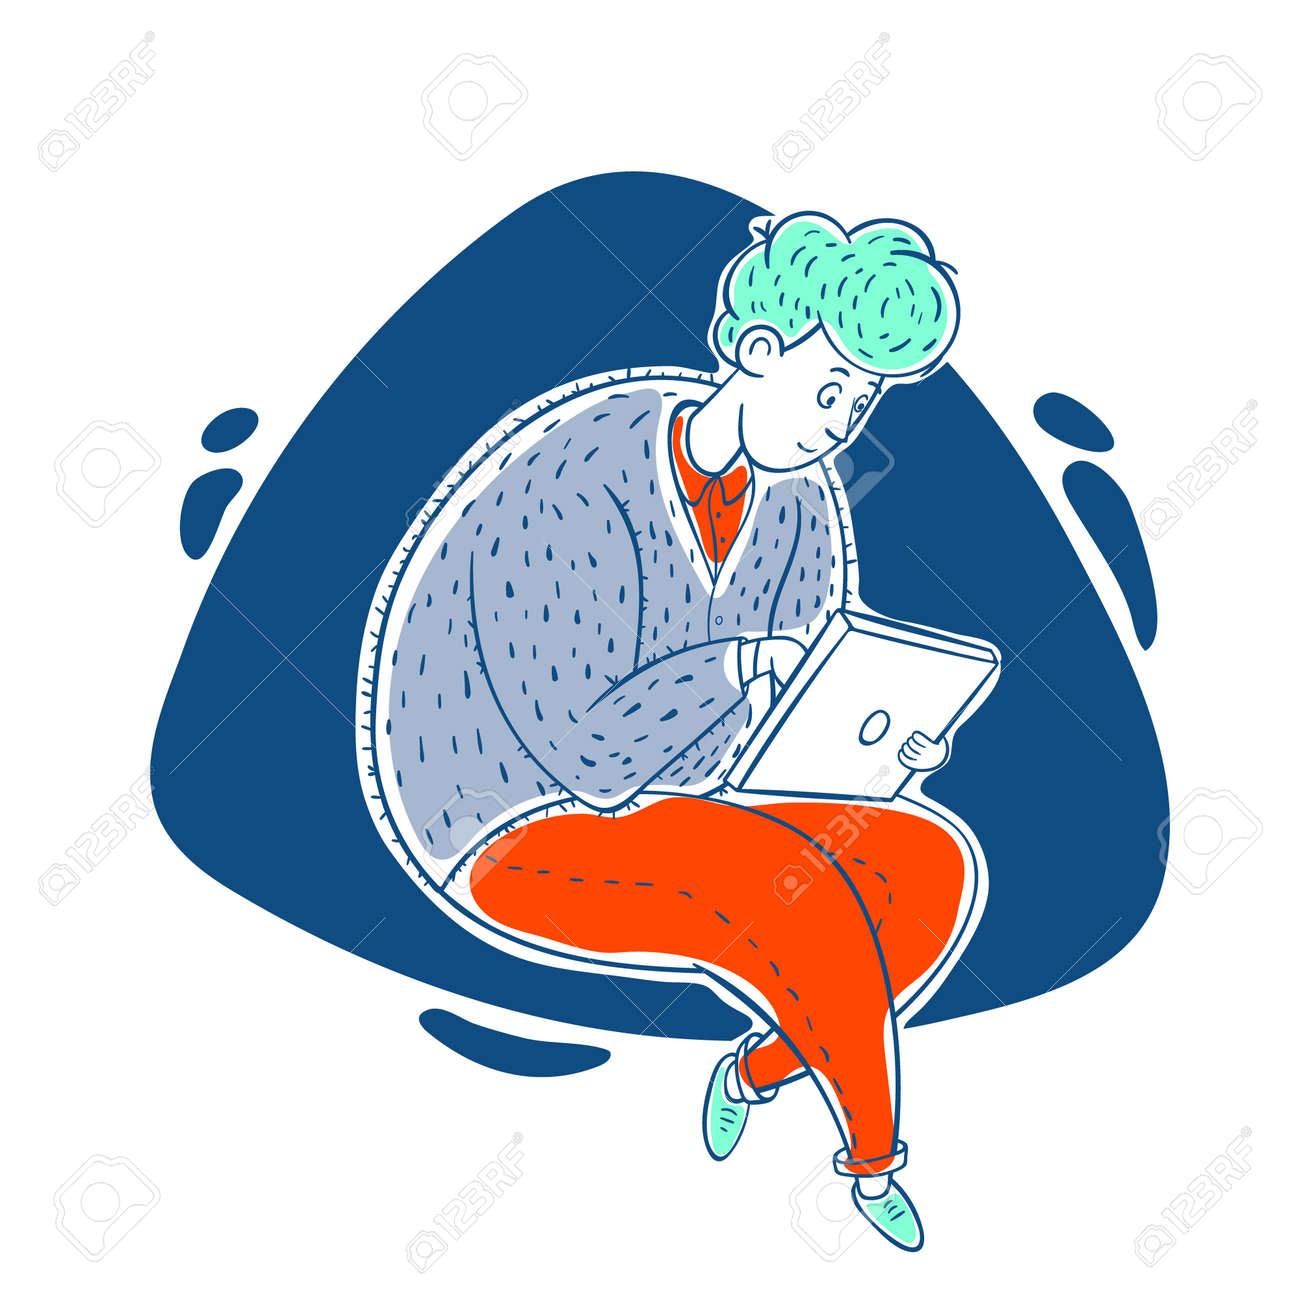 The guy works online at home. Distance work. Correspondence. Cartoon contour illustration in a vector. - 159585255